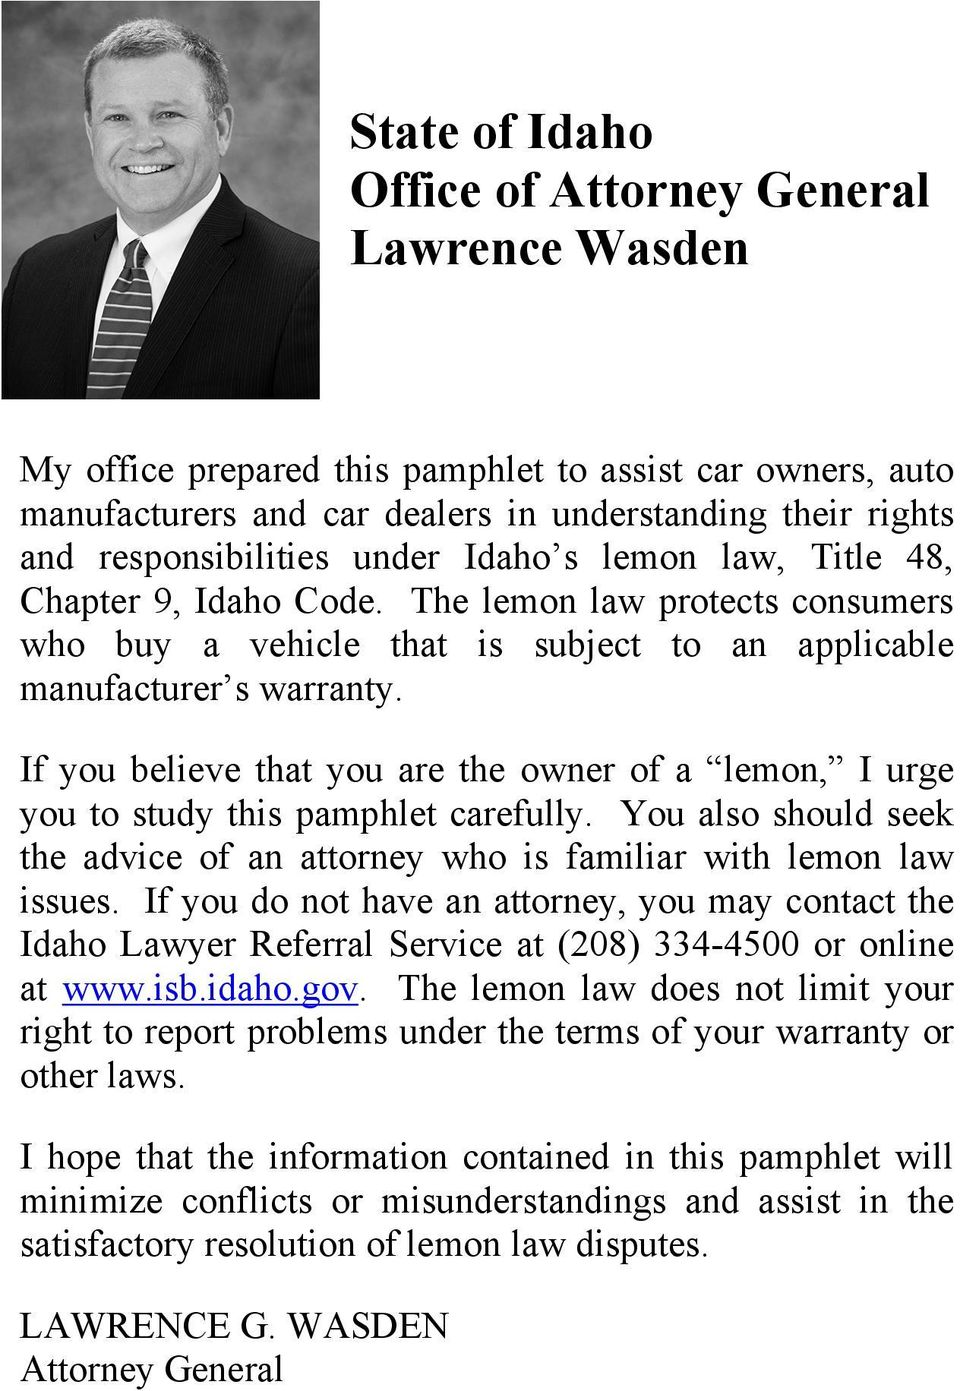 If you believe that you are the owner of a lemon, I urge you to study this pamphlet carefully. You also should seek the advice of an attorney who is familiar with lemon law issues.